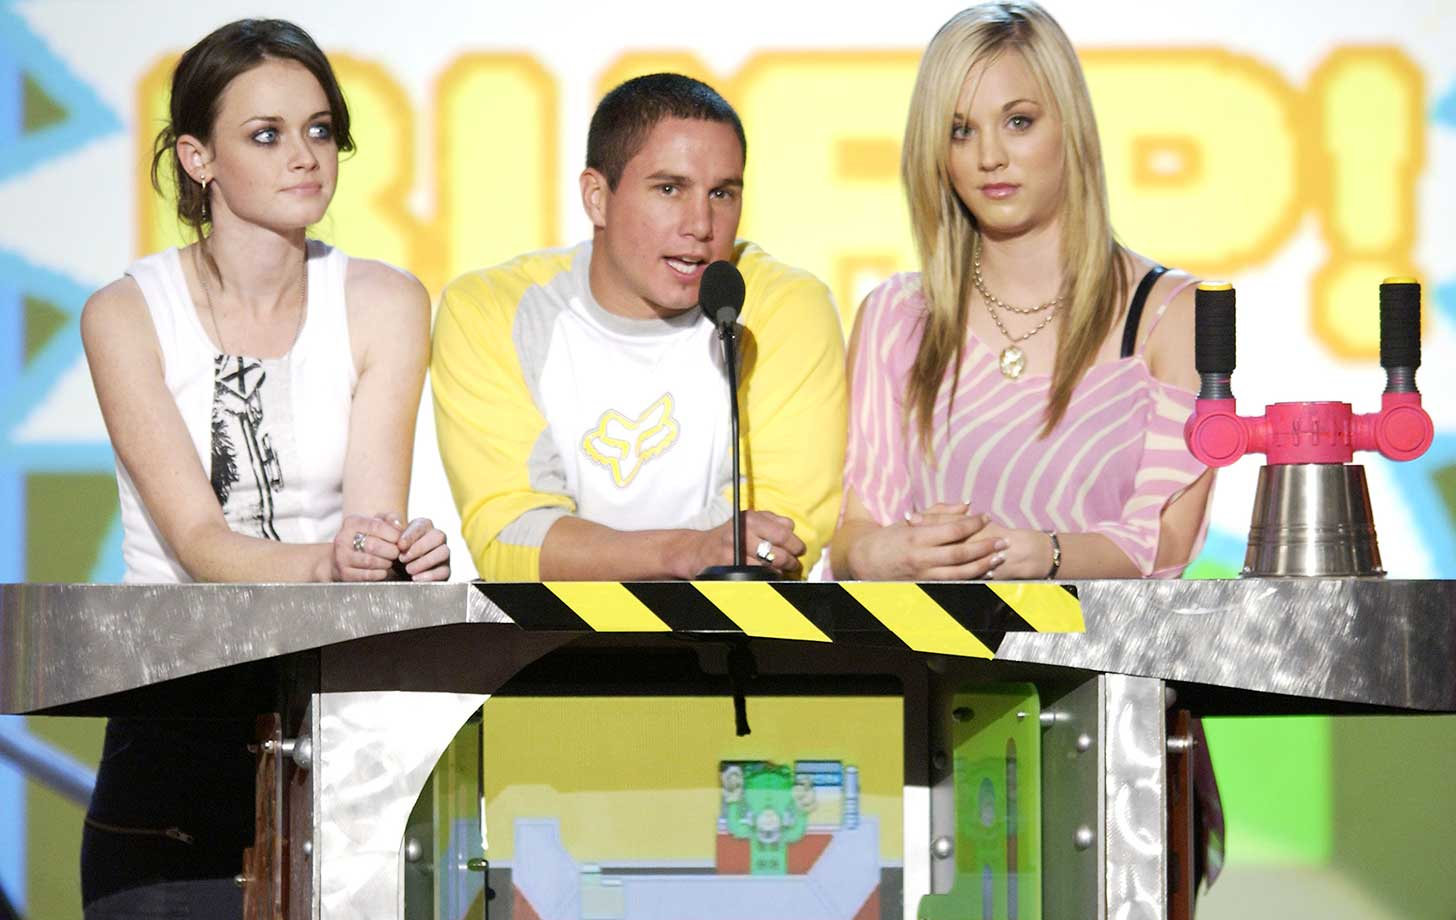 Alexis Biedel, left, Dave Mirra and Kaley Cuco during Nickelodeon's 16th Annual Kids' Choice Awards in 2003 in Santa Monica, Calif.